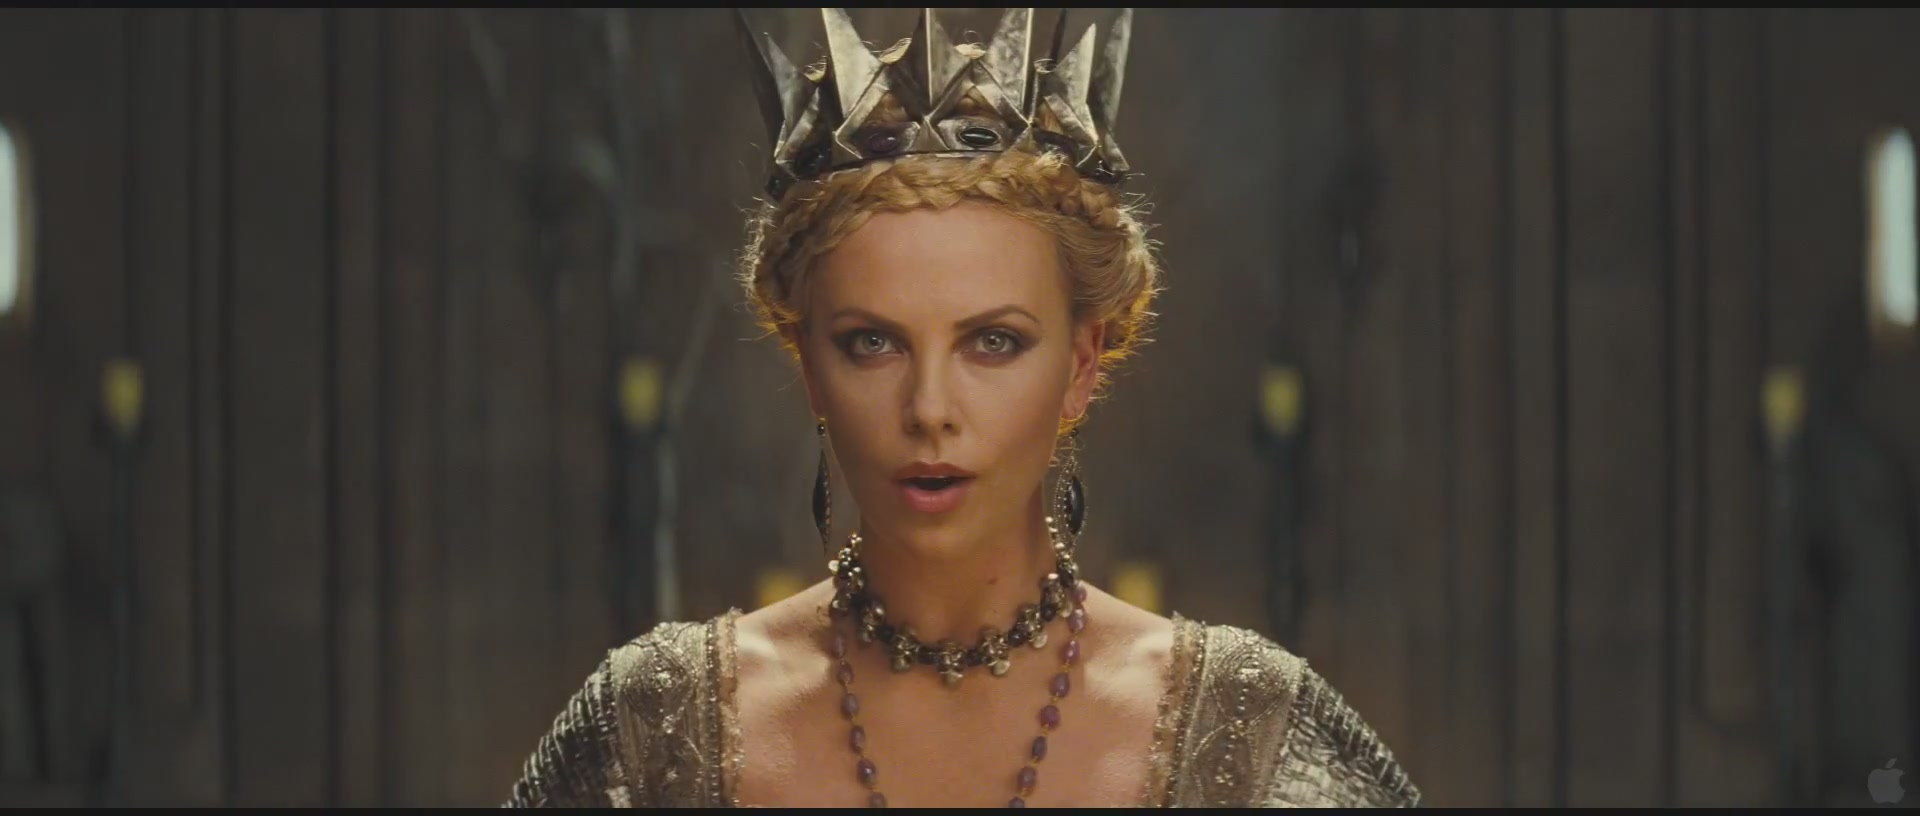 Snow-White-and-the-Huntsman-official-Trailer-1-HQ-charlize-theron-26721454-1920-816